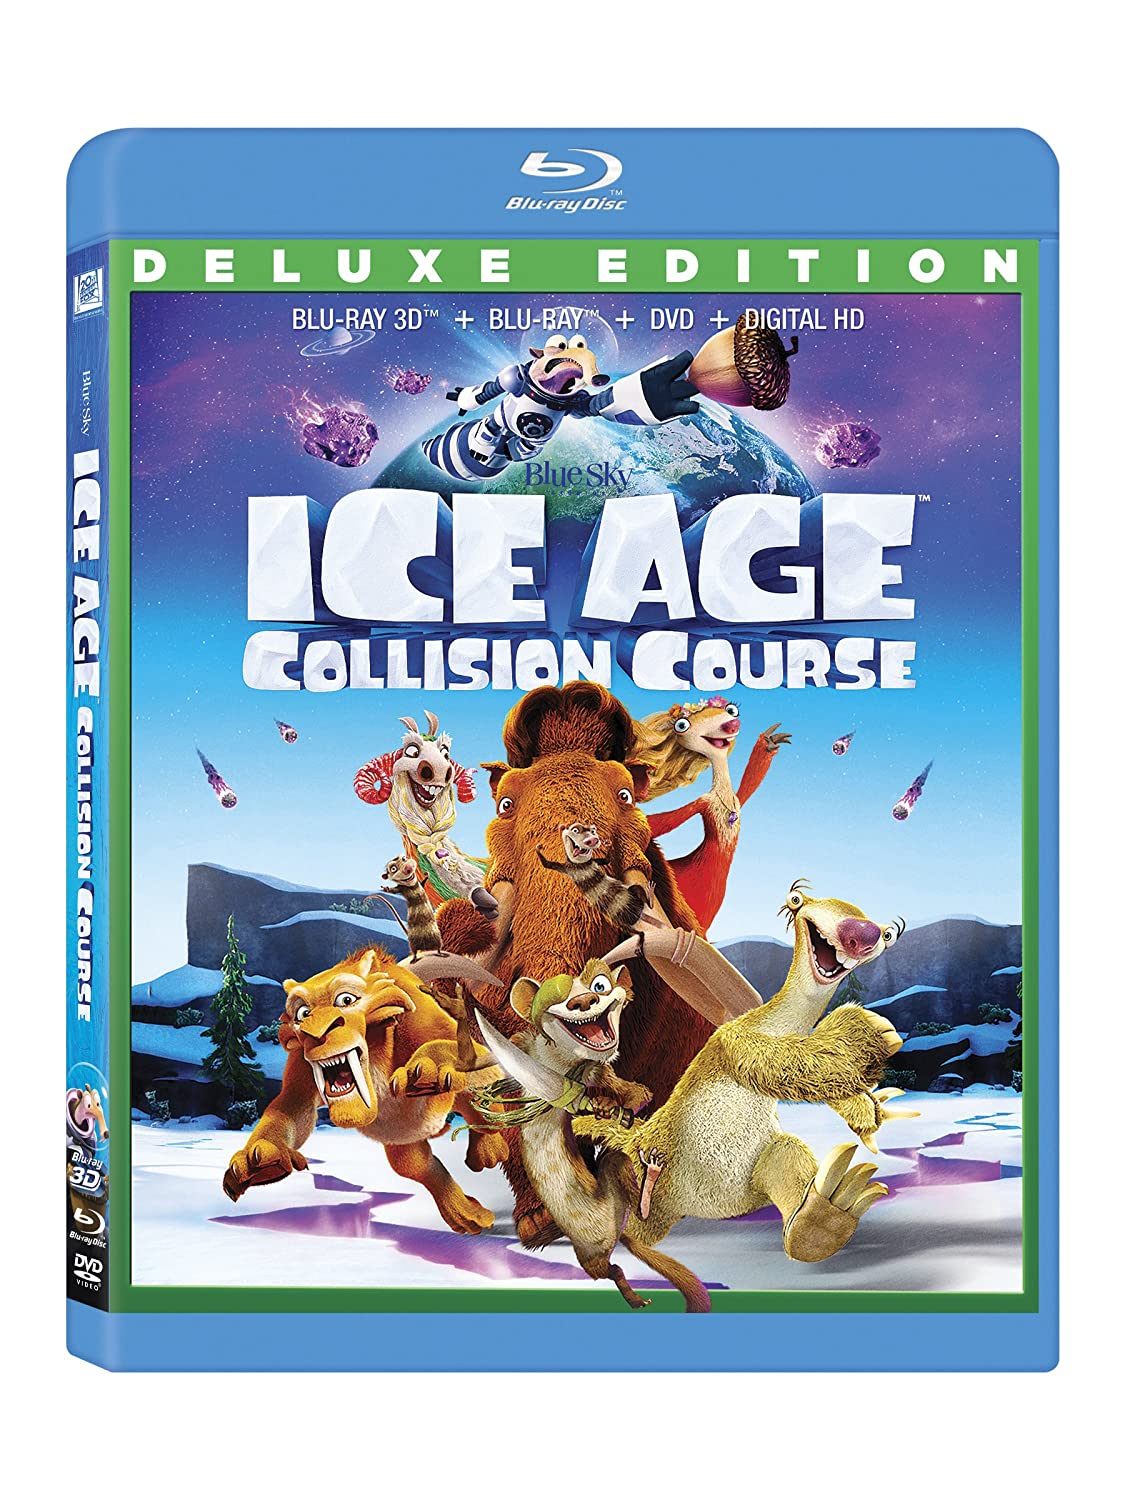 Ice Age: Collision Course 2016 Blu-ray 3D BALTiC 1080p AVC DTS 5 1-HDCLUB